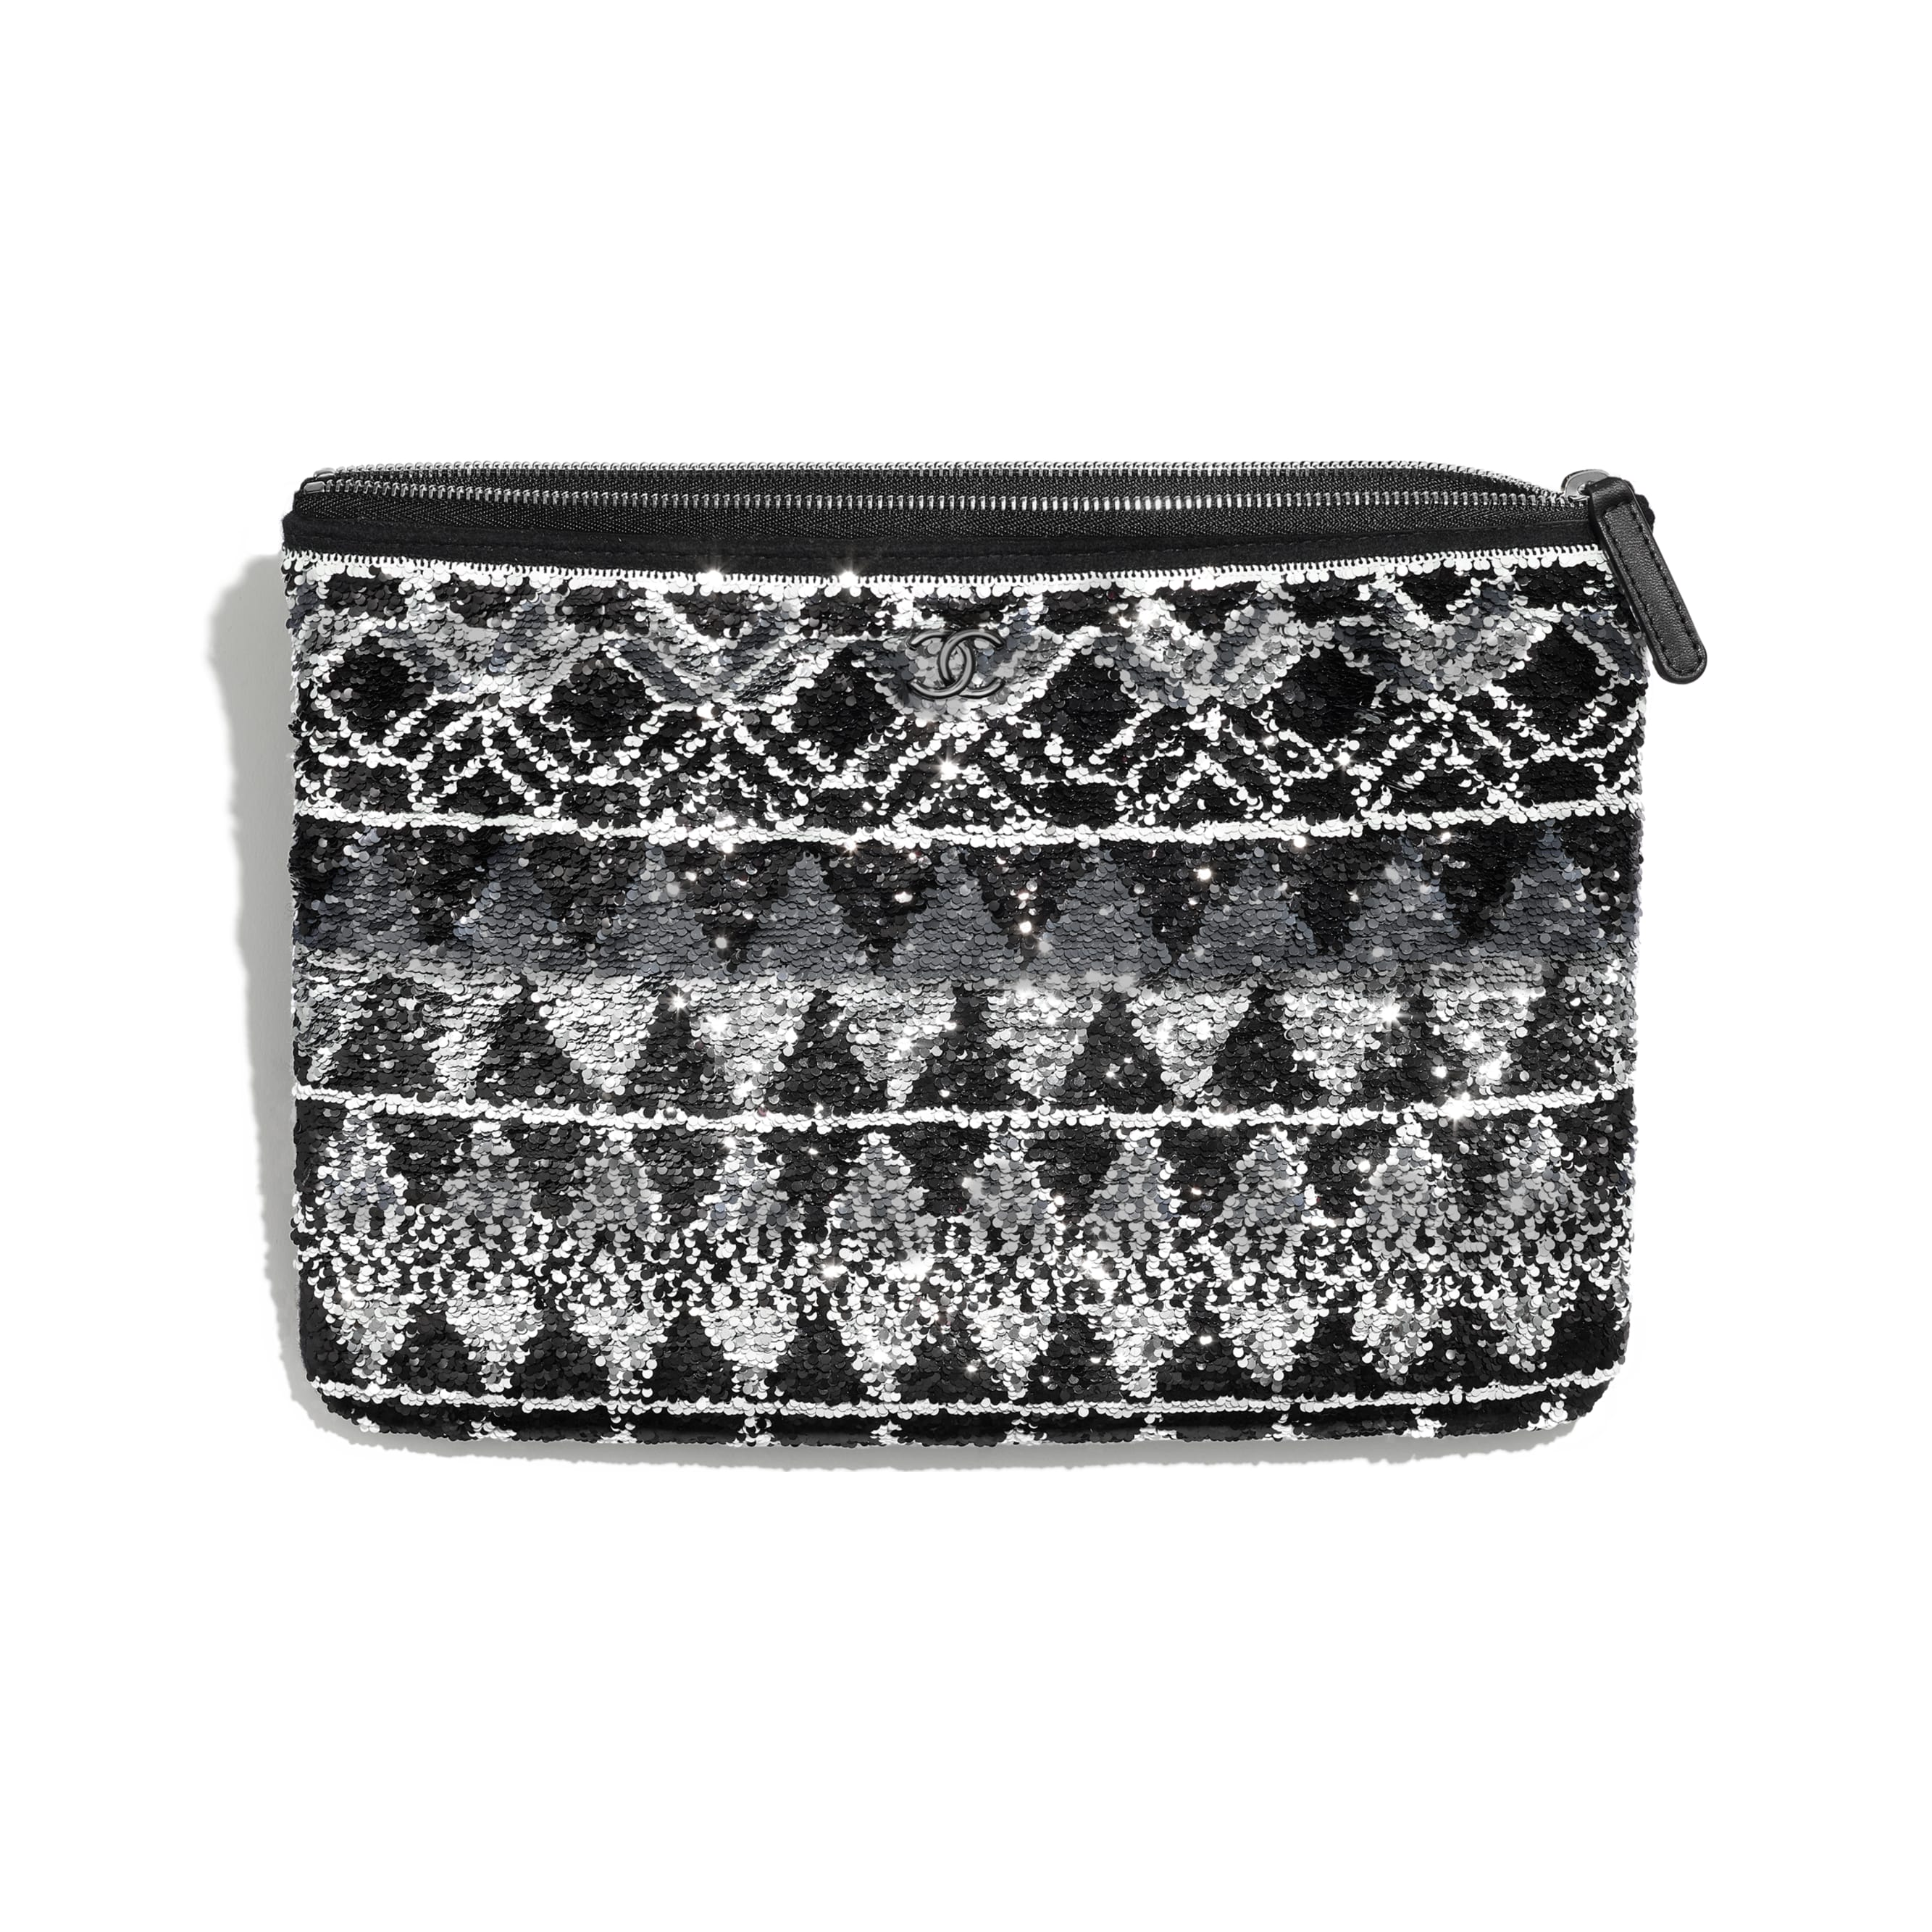 Pouch - Silver & Black - Sequins, Wool Felt & Ruthenium-Finish Metal - Other view - see standard sized version